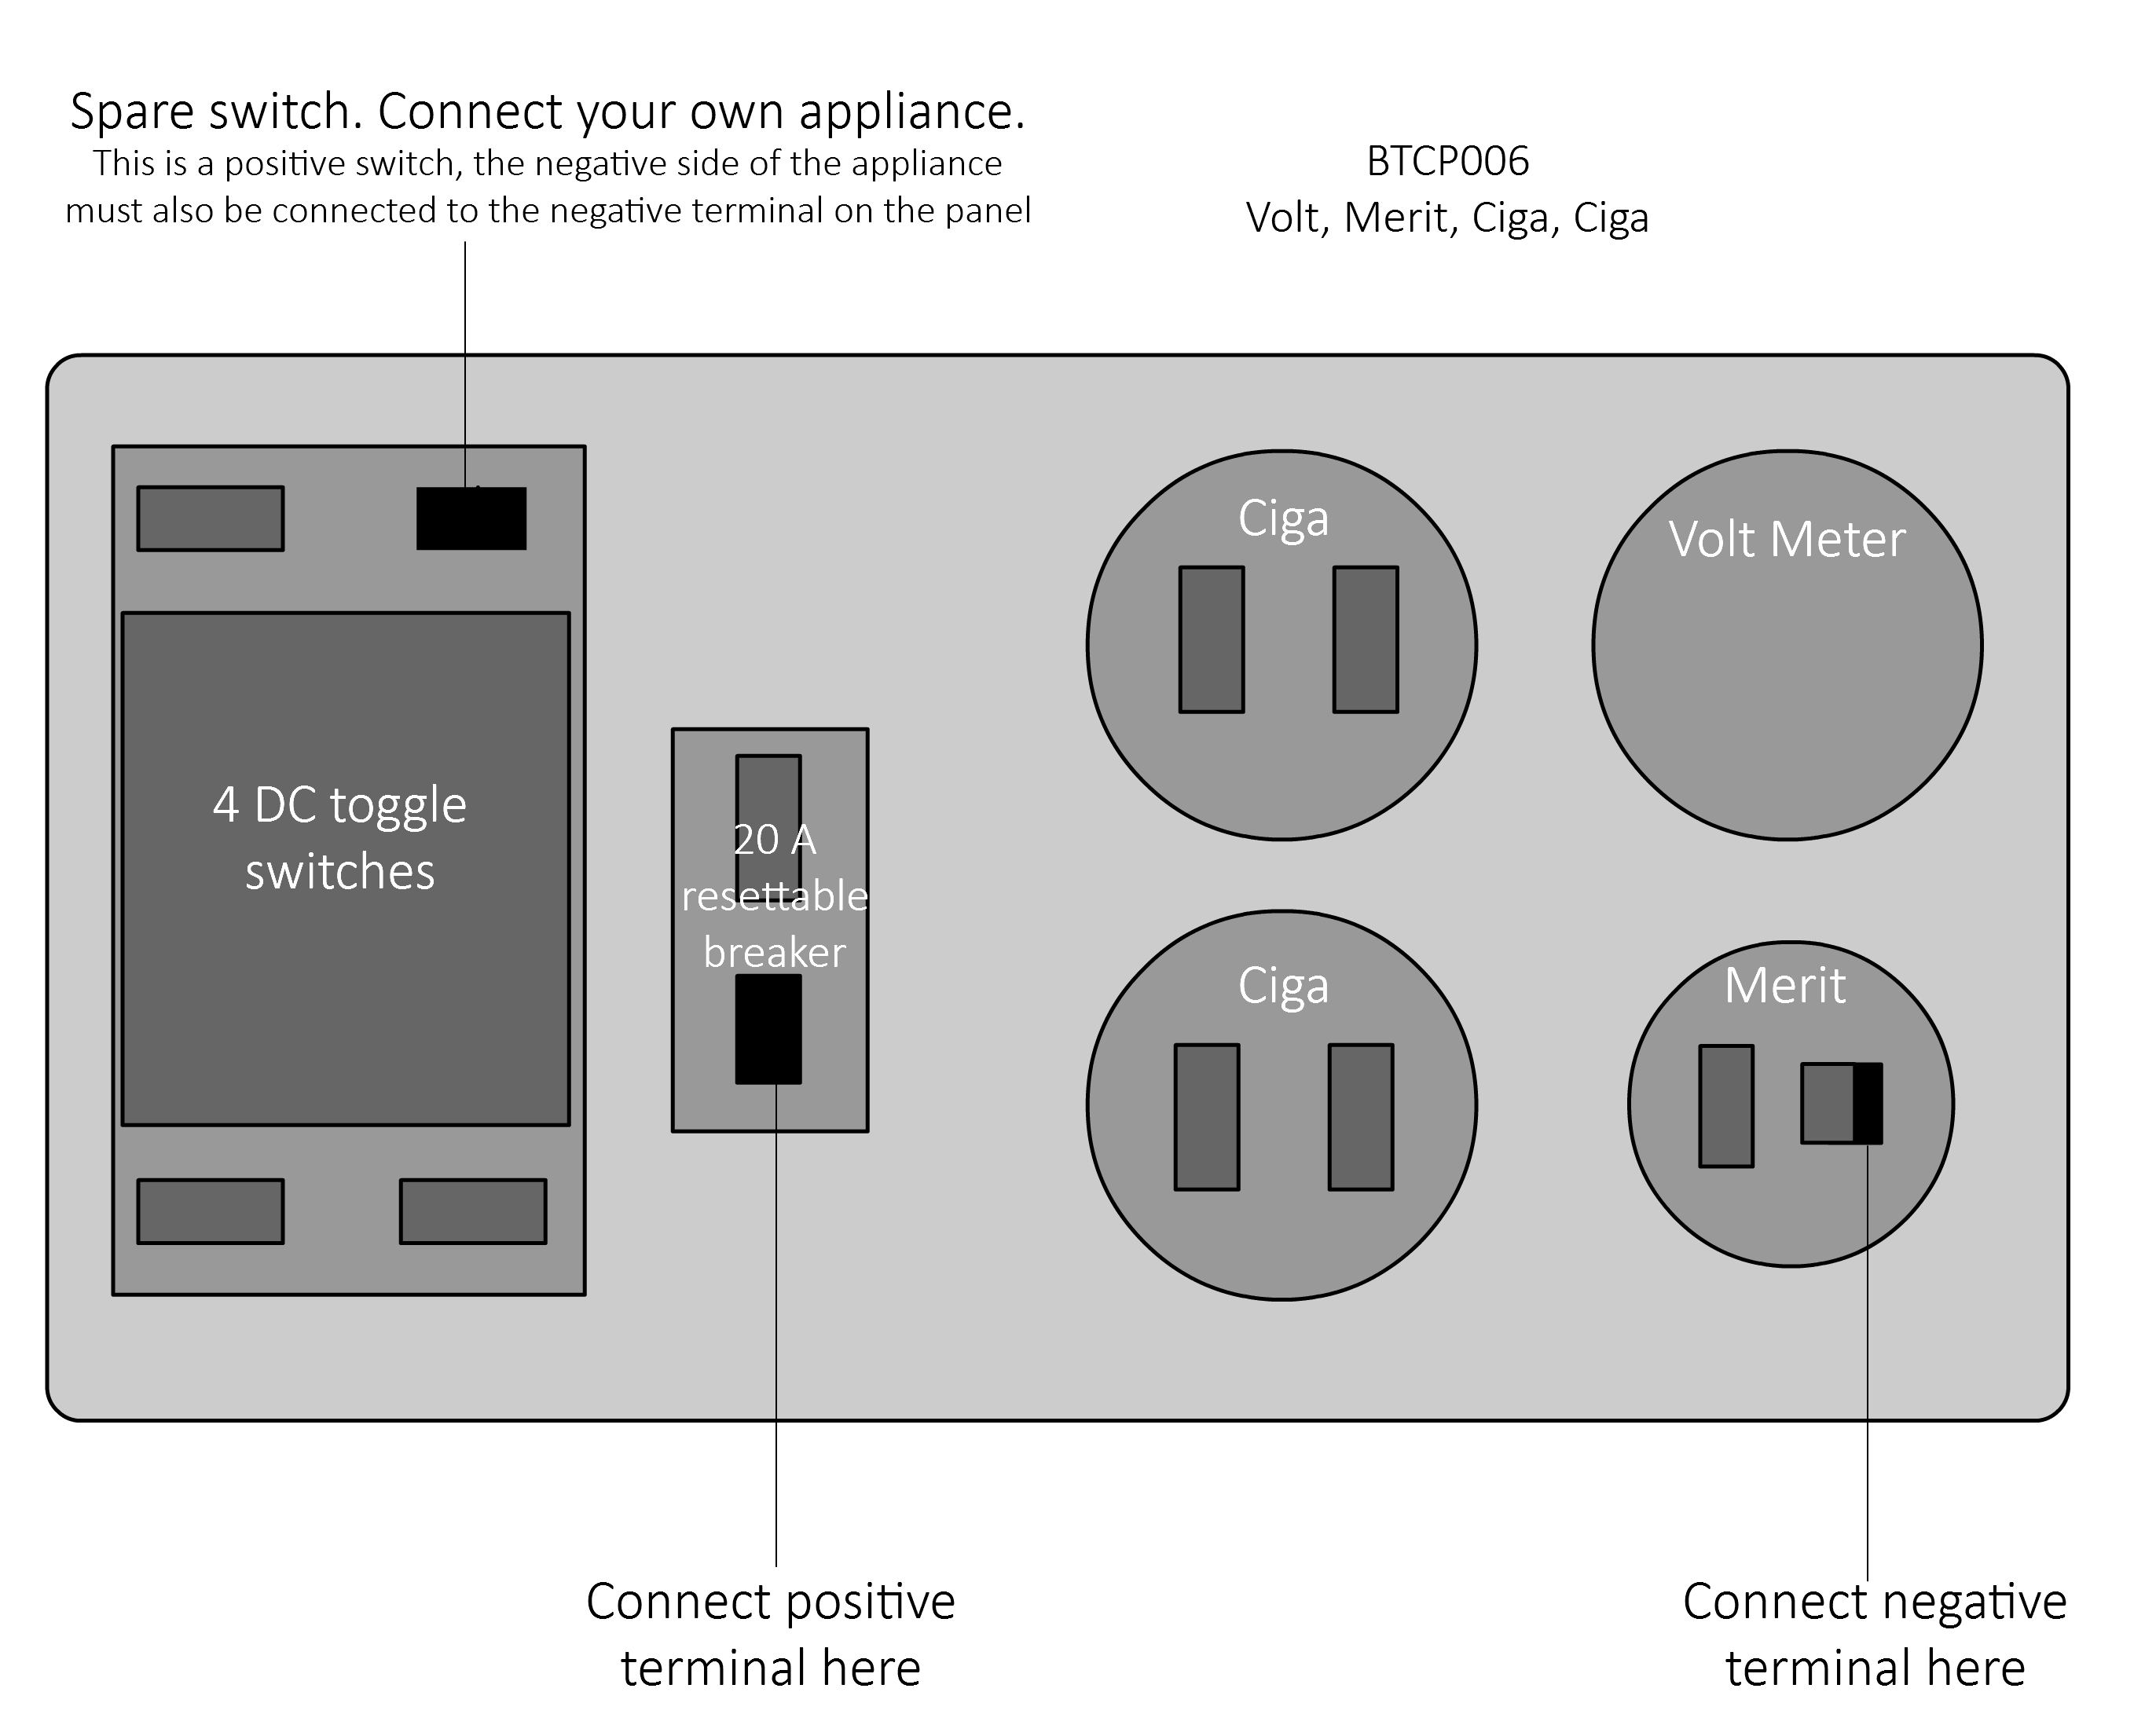 Wiring Diagram for the DC Distribution Panel 006 by Baintech